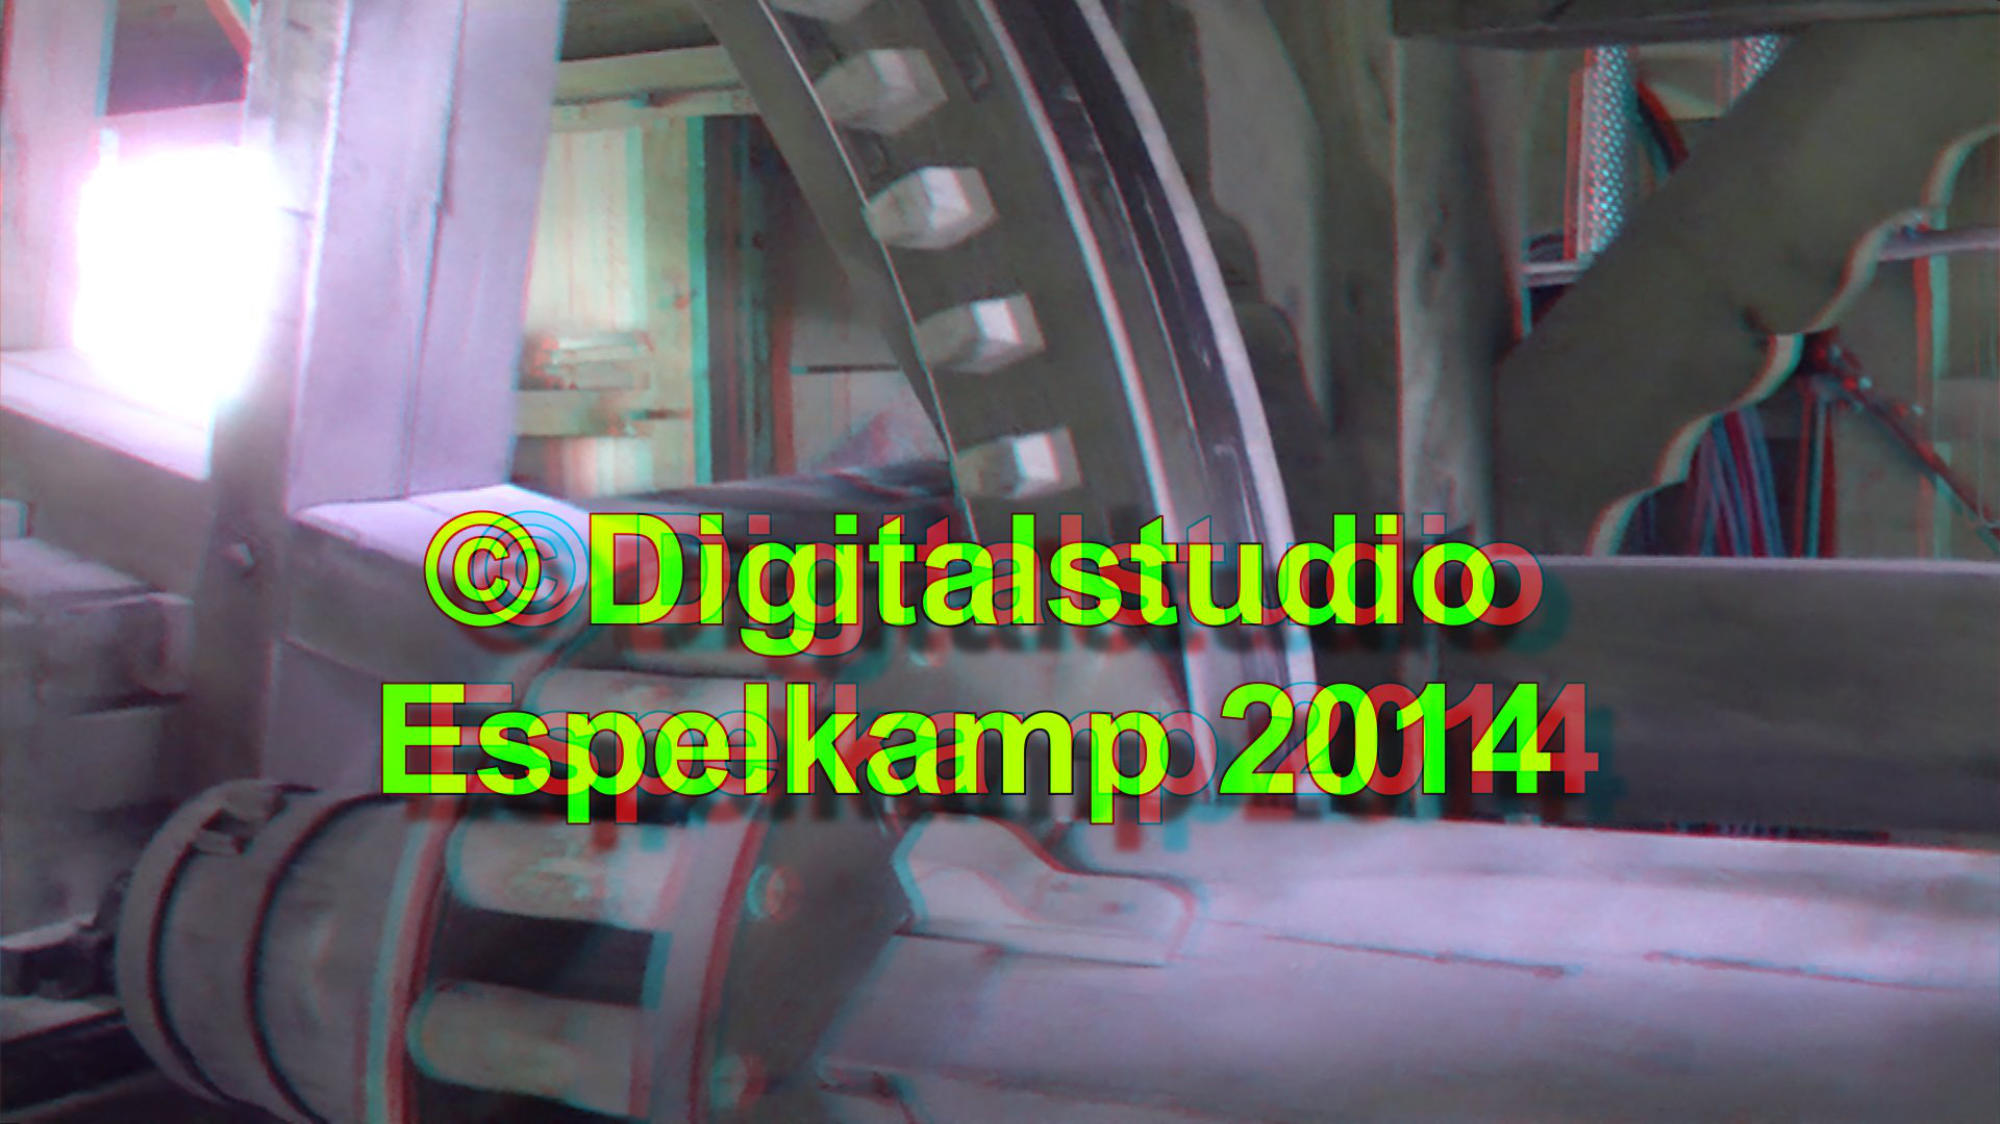 3D-Fotos vom Digitalstudio Espelkamp